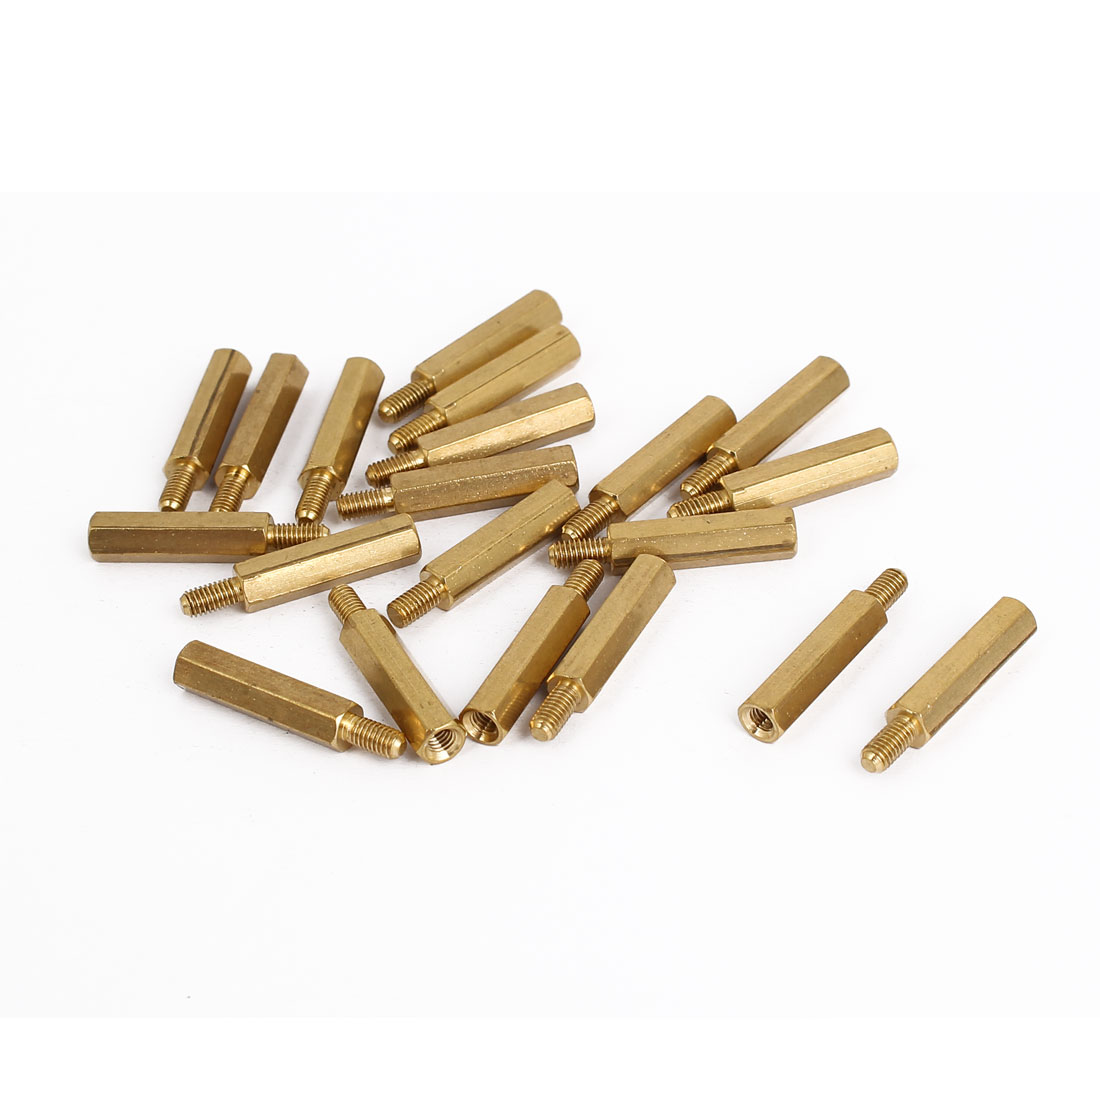 M3 Male/Female Thread Brass Hex Hexagonal Spacer Standoff Support 19mm+6mm 20pcs